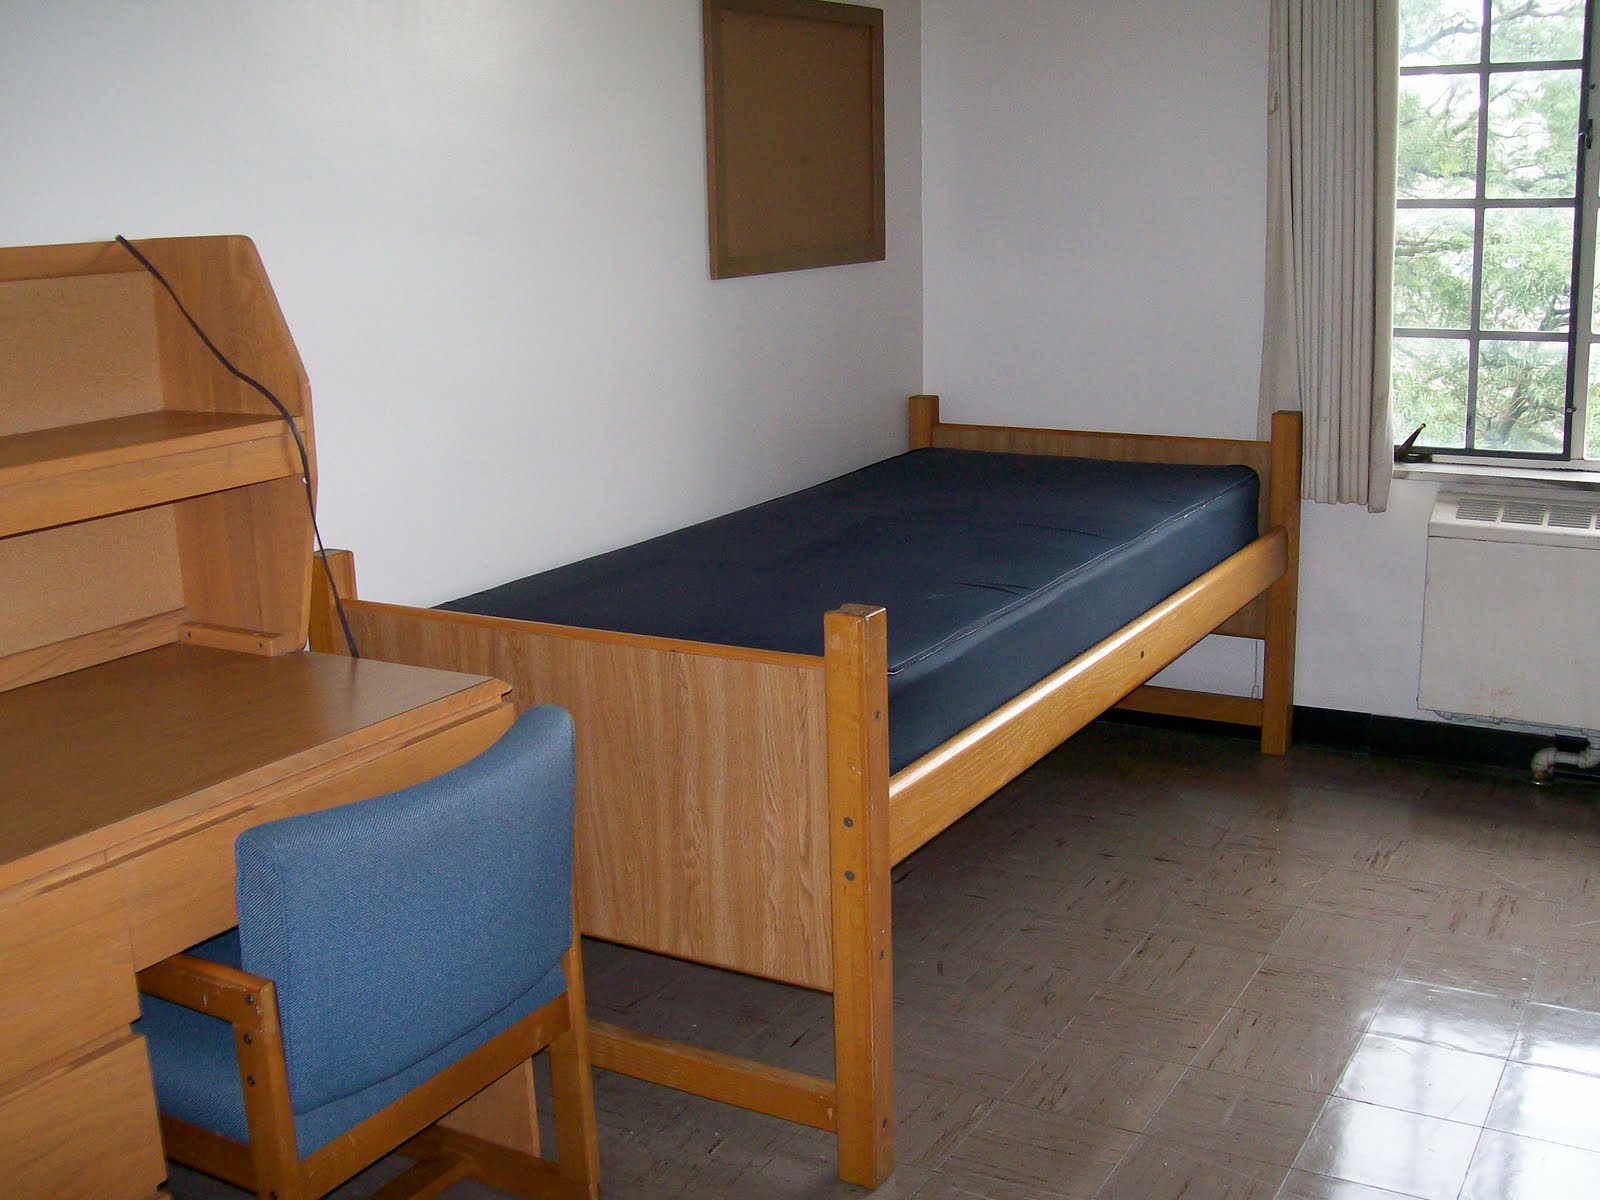 Dorm Furniture [Slideshow]